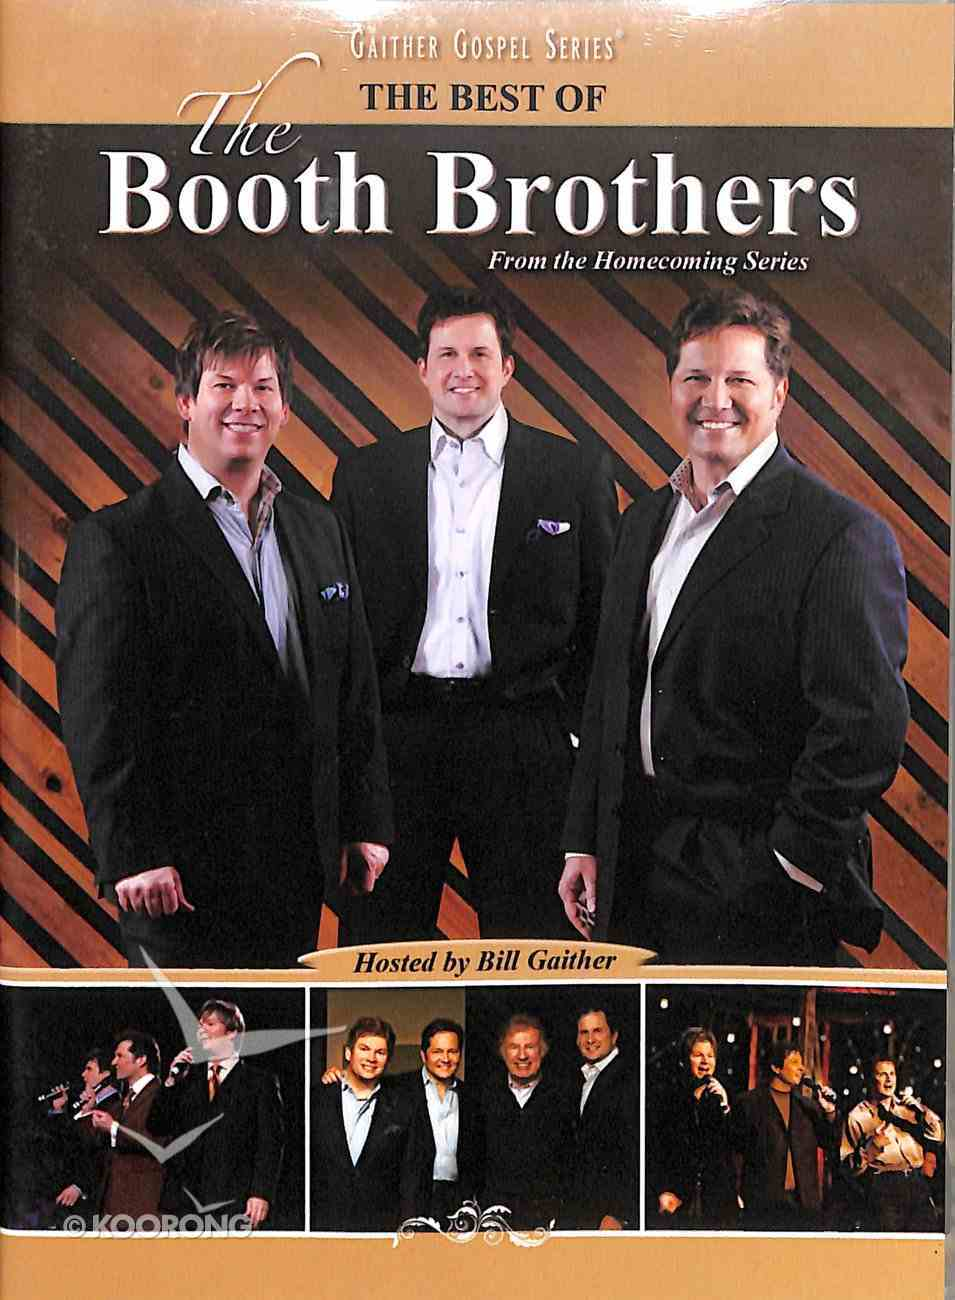 The Best of the Booth Brothers (Gaither Gospel Series) DVD